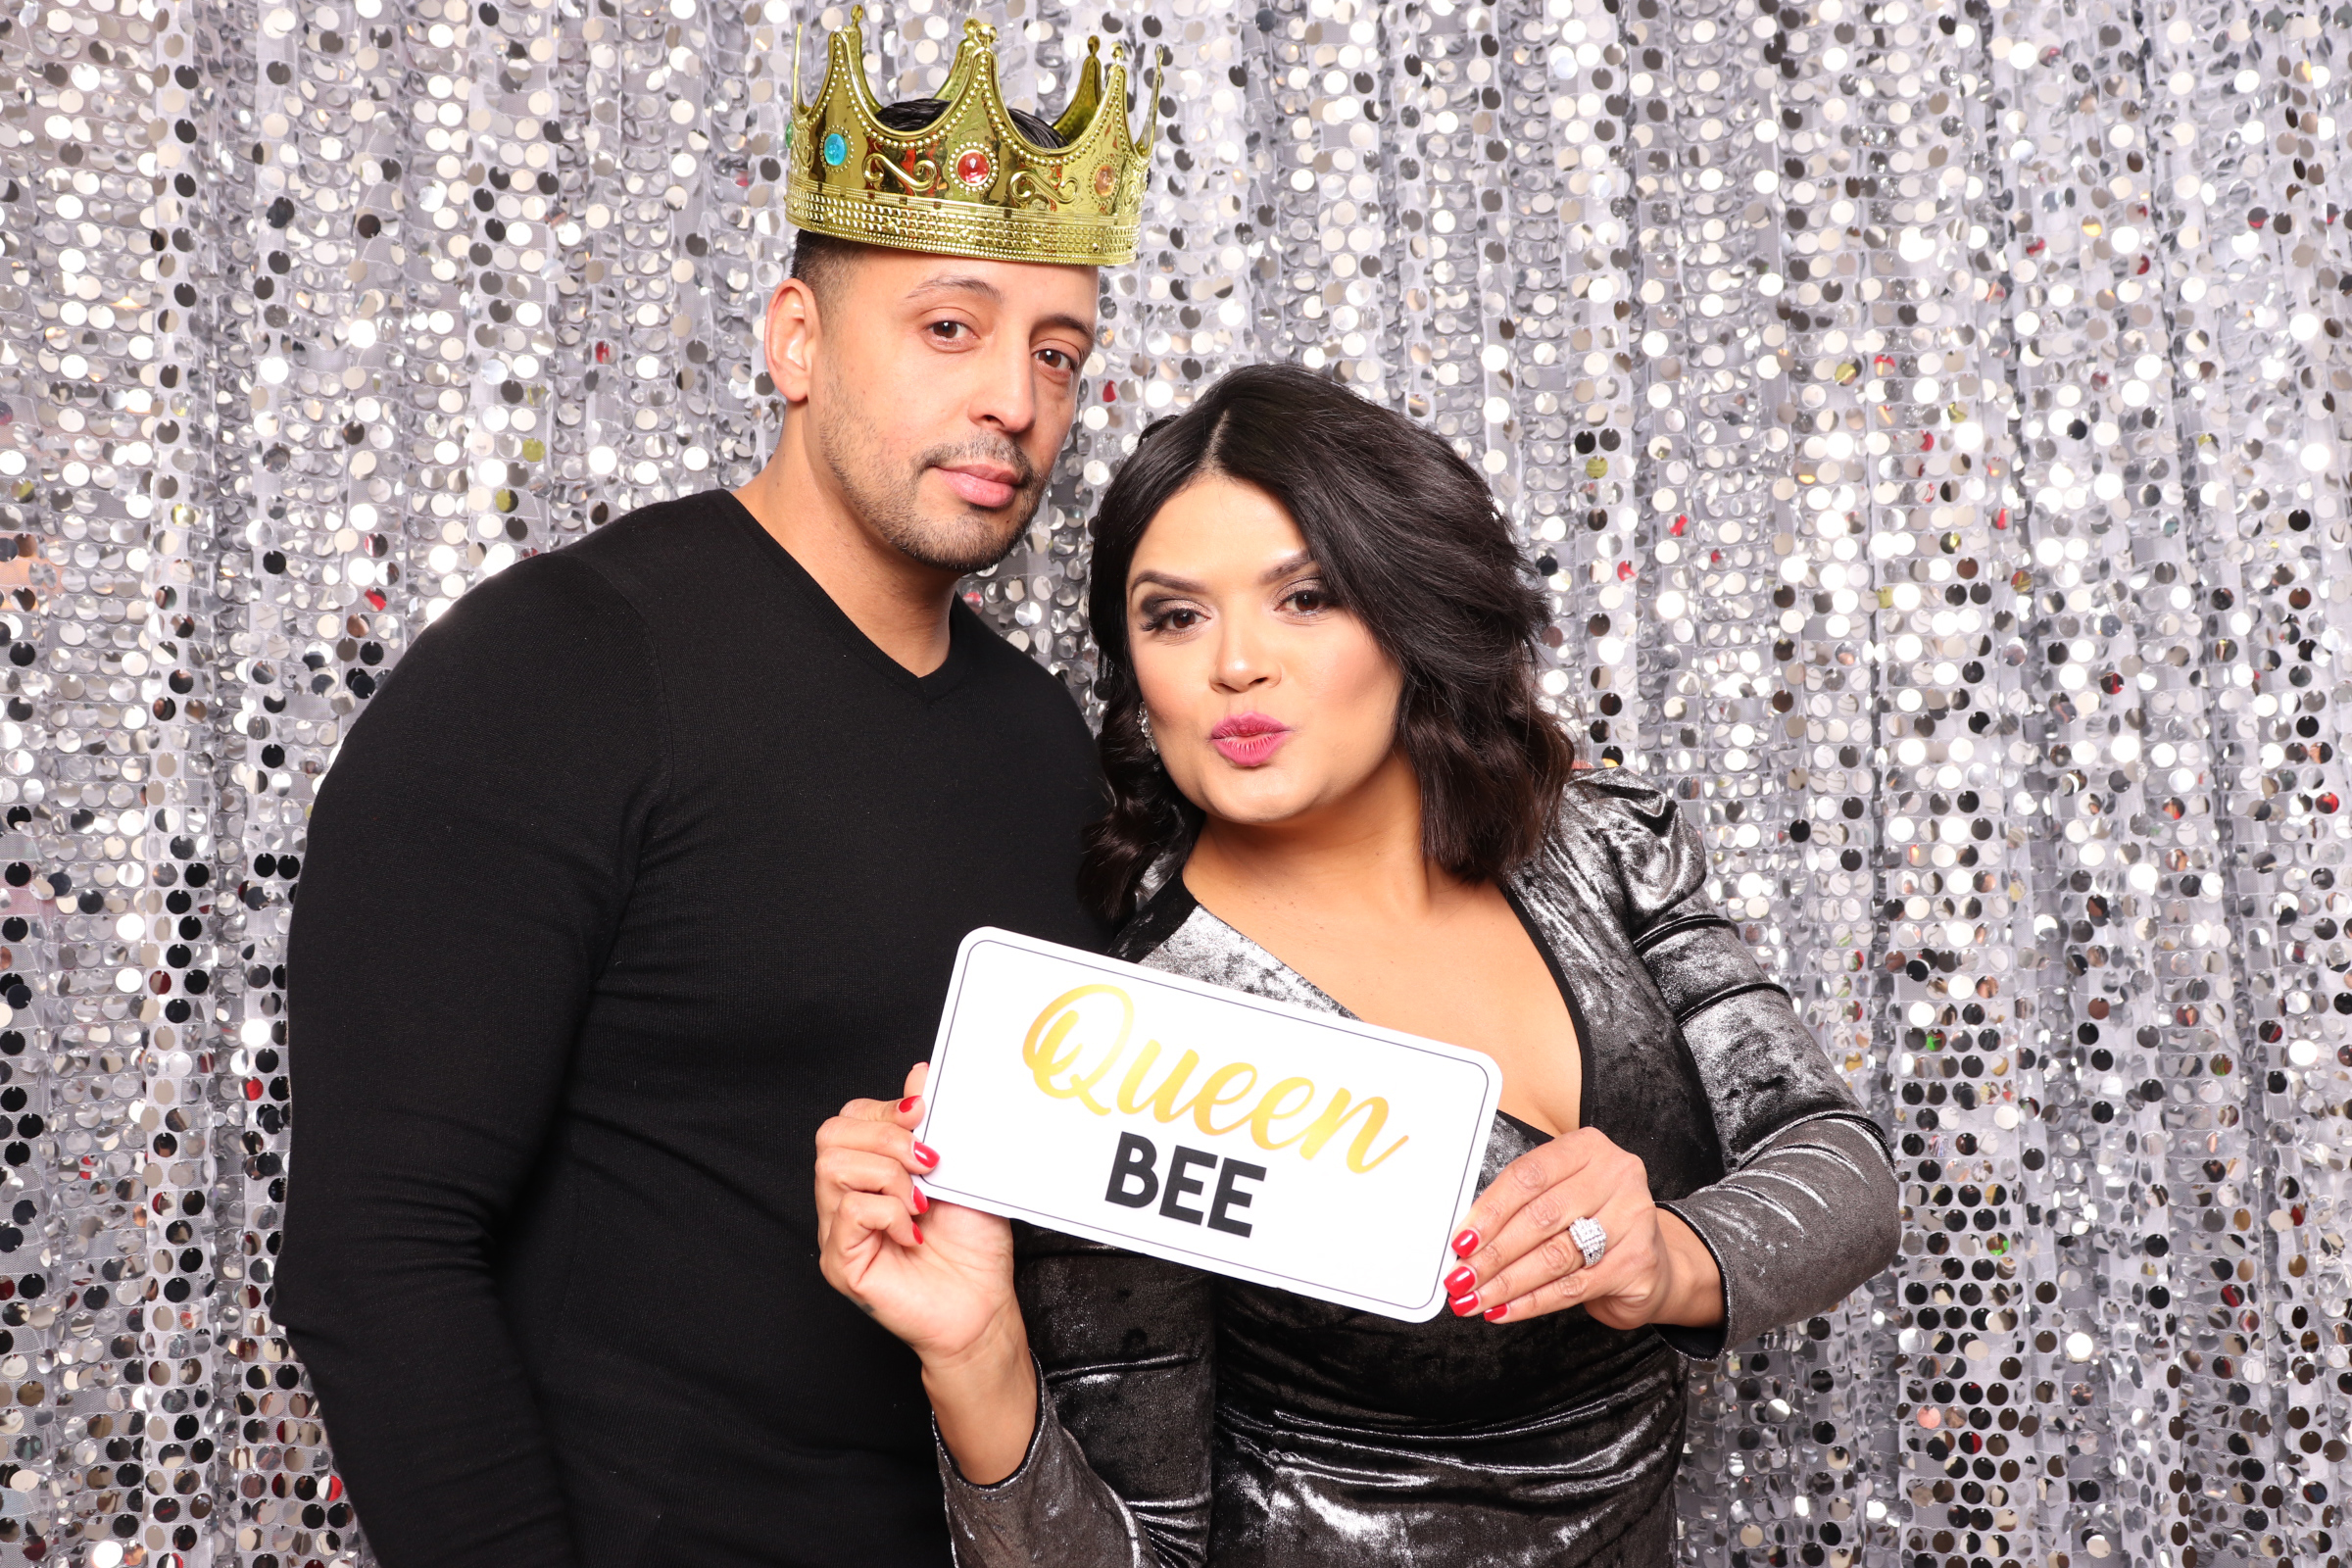 Photo Booth Queen Bee